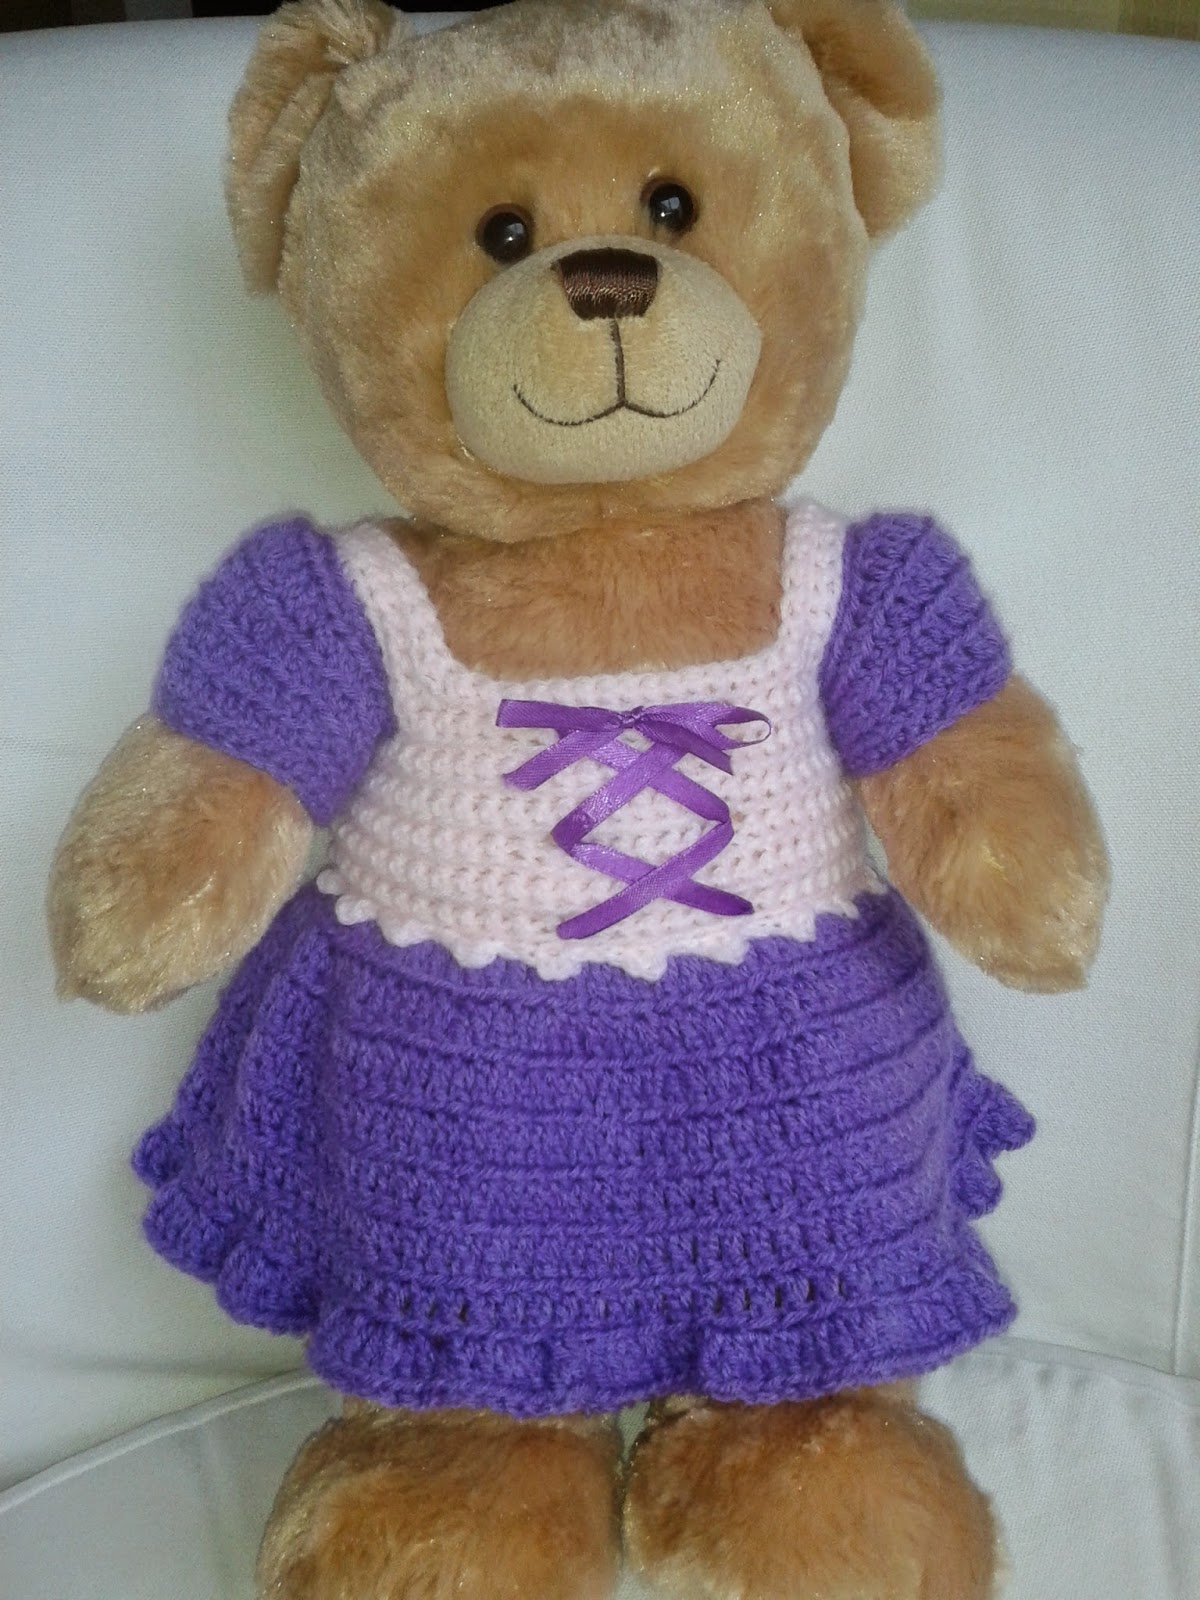 Linmary Knits: Teddy bear crochet dress